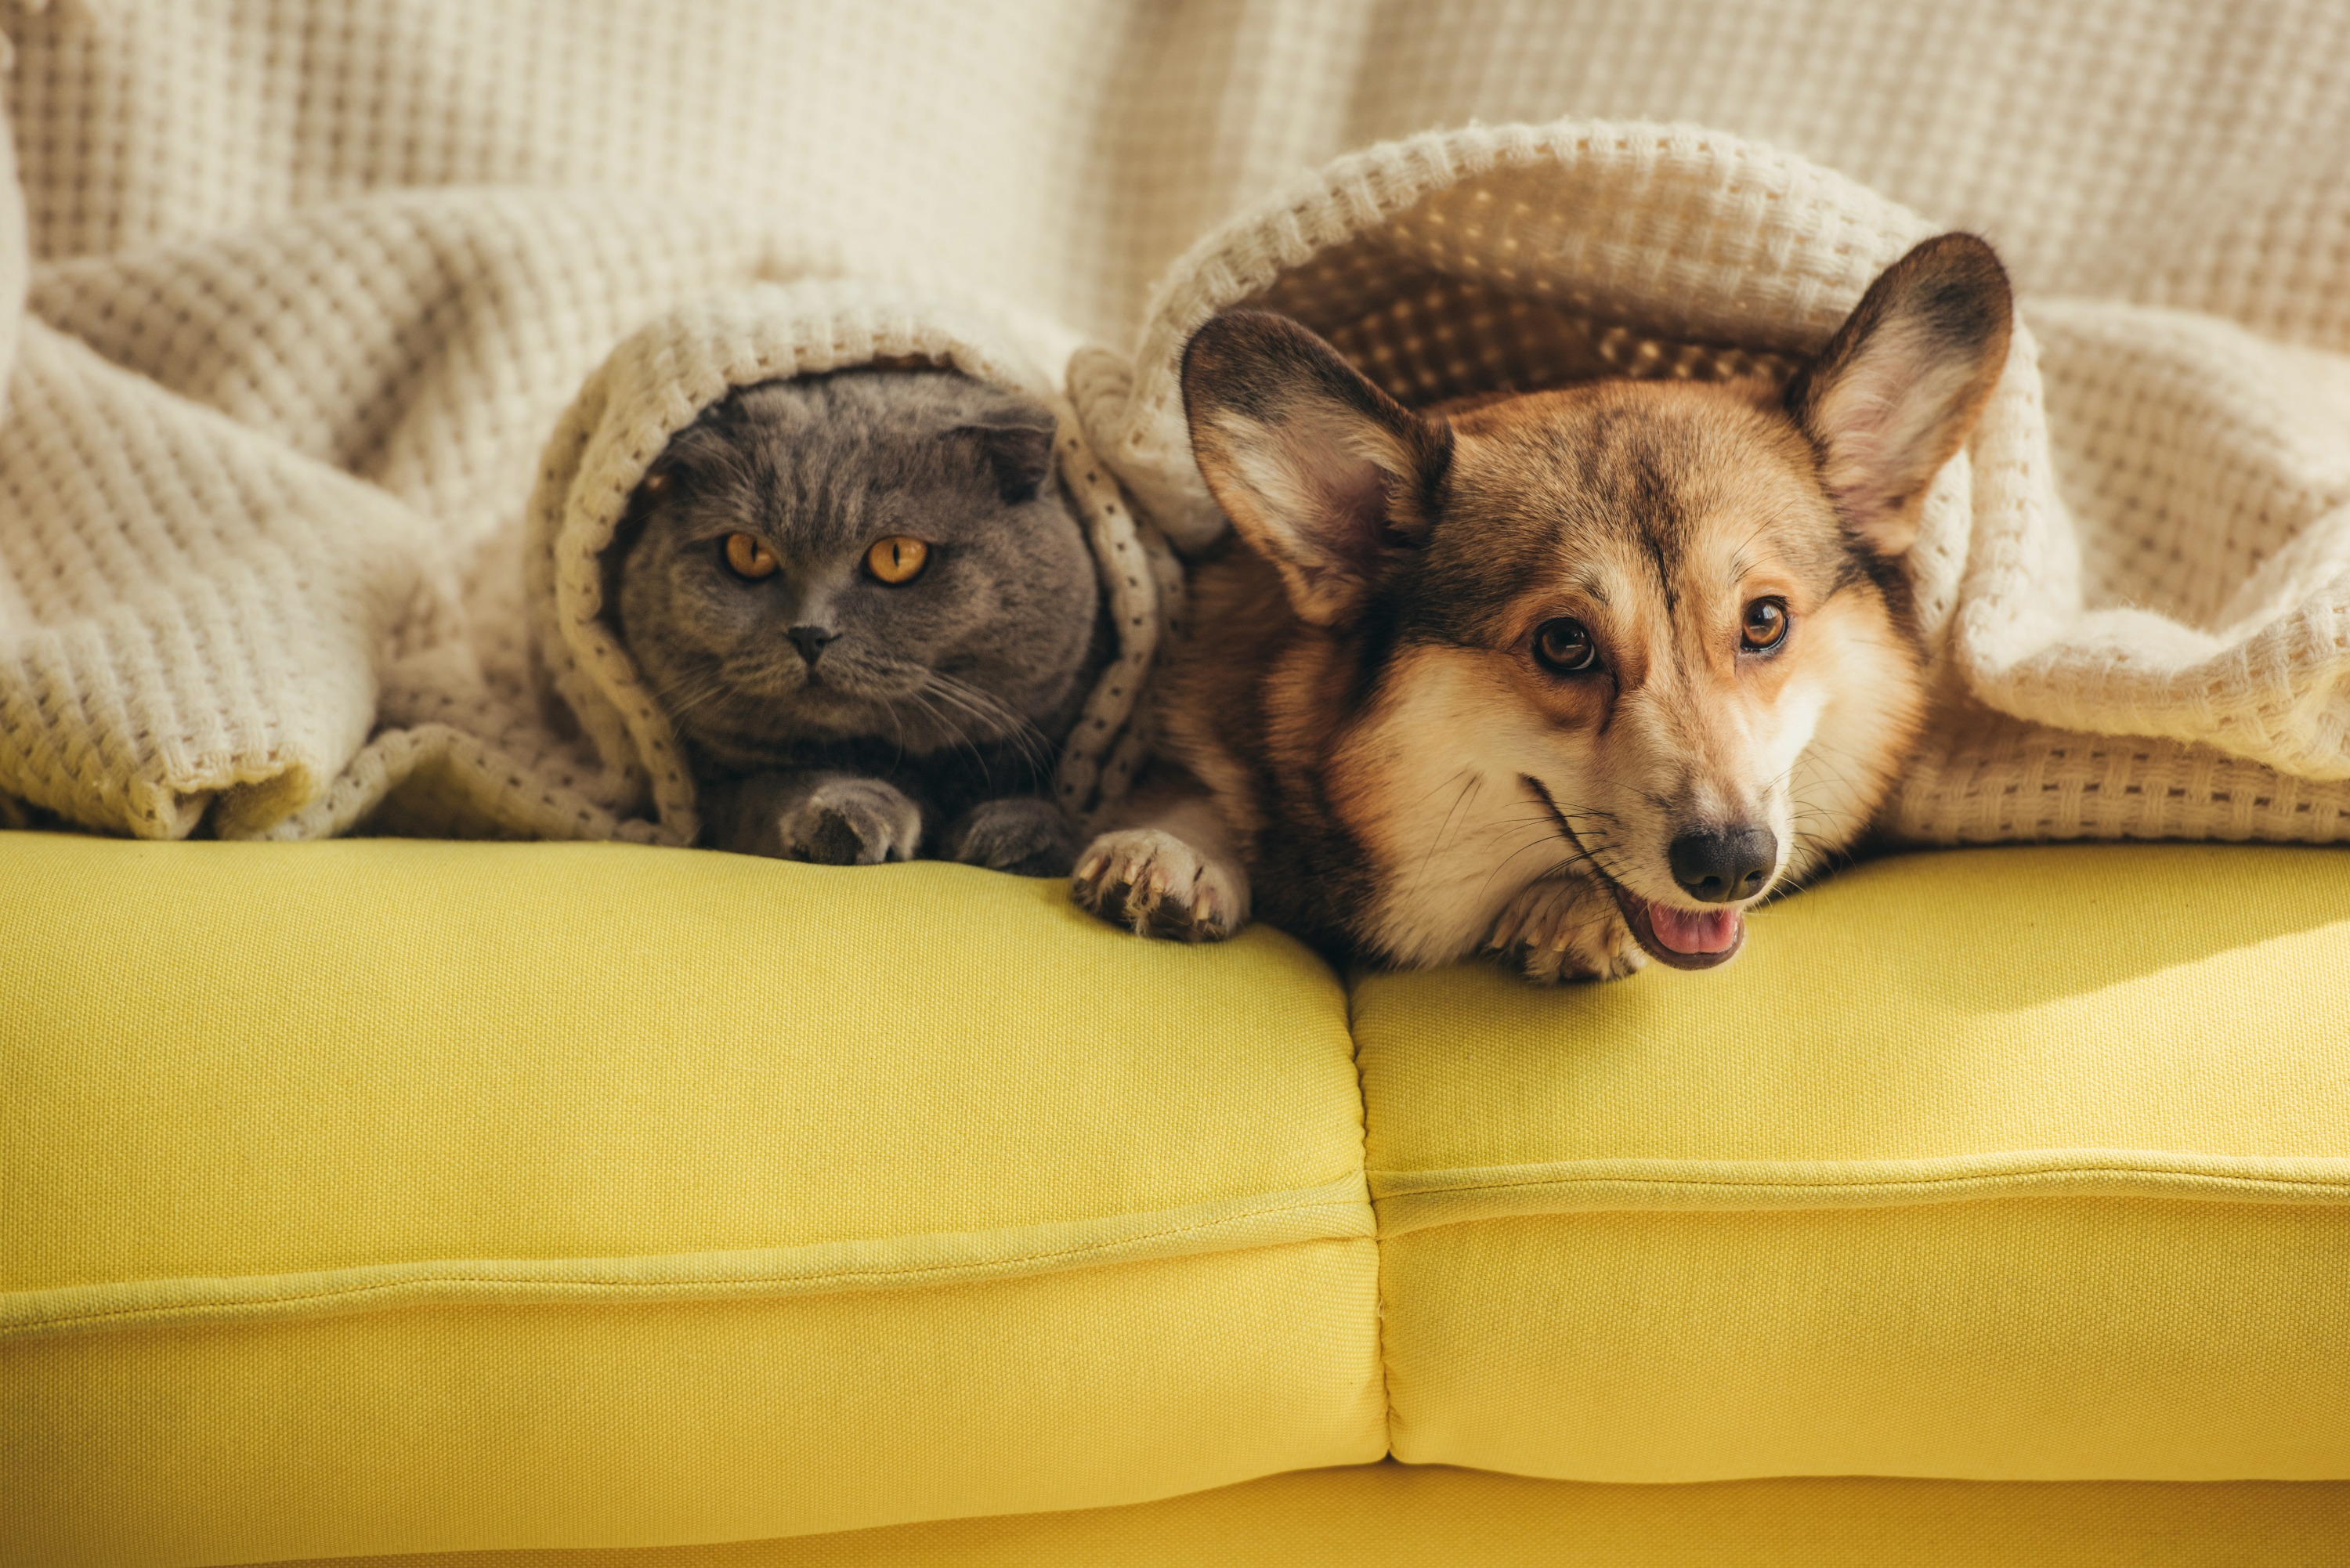 A grey cat and a light brown corgi under a cream colored blanket on a yellow couch.